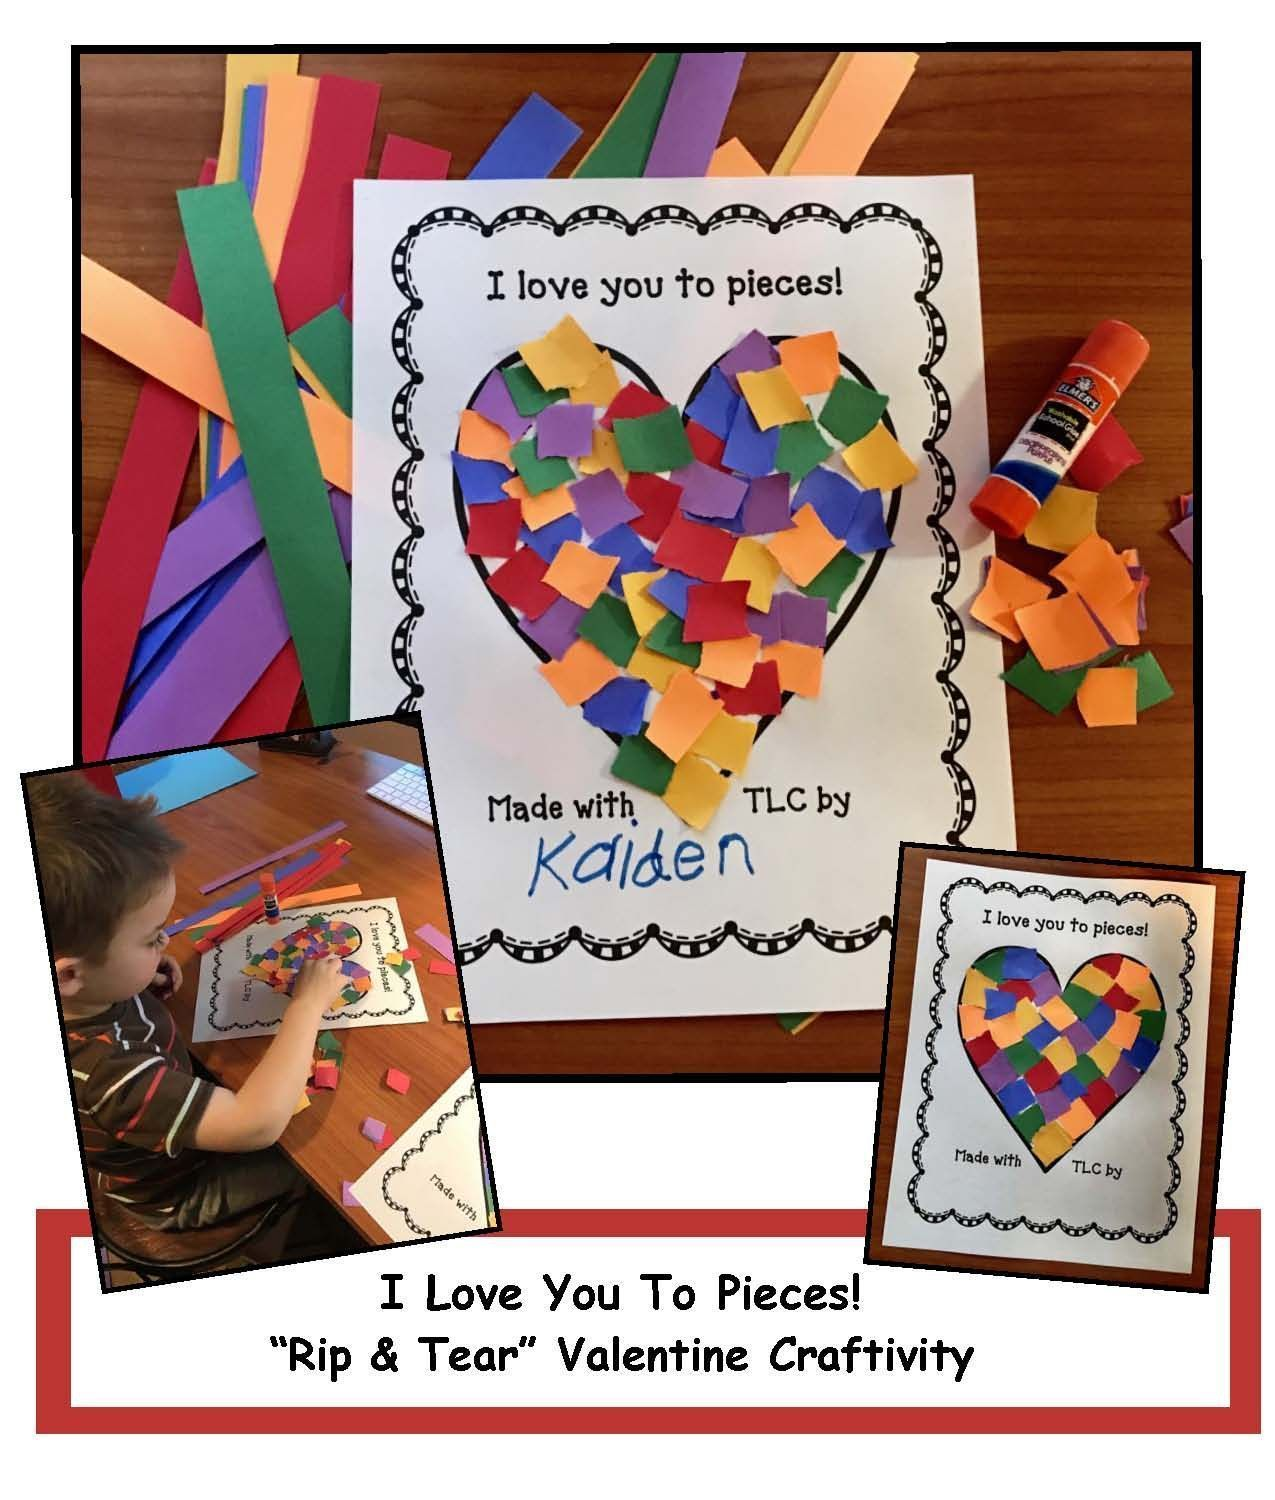 Getting Even The Most Reluctant Writers Excited #grandparentsdaycraftsforpreschoolers valentines day activities, valentines day cards, valentines day crafts, Mother's day activities, father's day activities, mothers day cards,  veterans day activities, grandparents day activities #grandparentsdaycraftsforpreschoolers Getting Even The Most Reluctant Writers Excited #grandparentsdaycraftsforpreschoolers valentines day activities, valentines day cards, valentines day crafts, Mother's day activities #grandparentsdaycraftsforpreschoolers